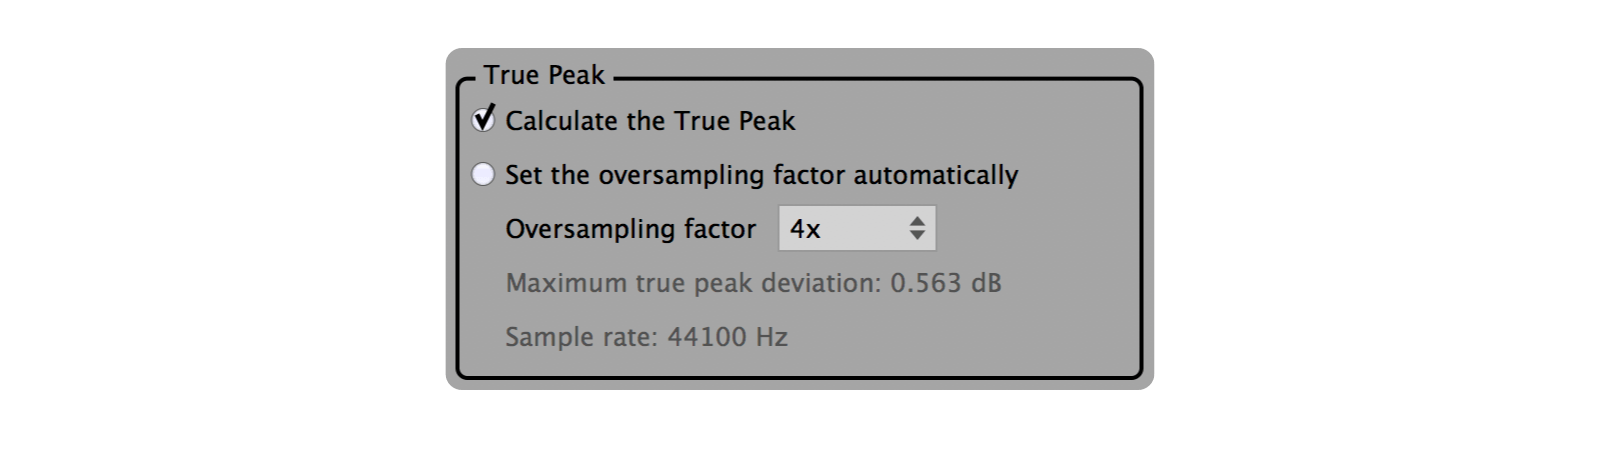 True peak settings.